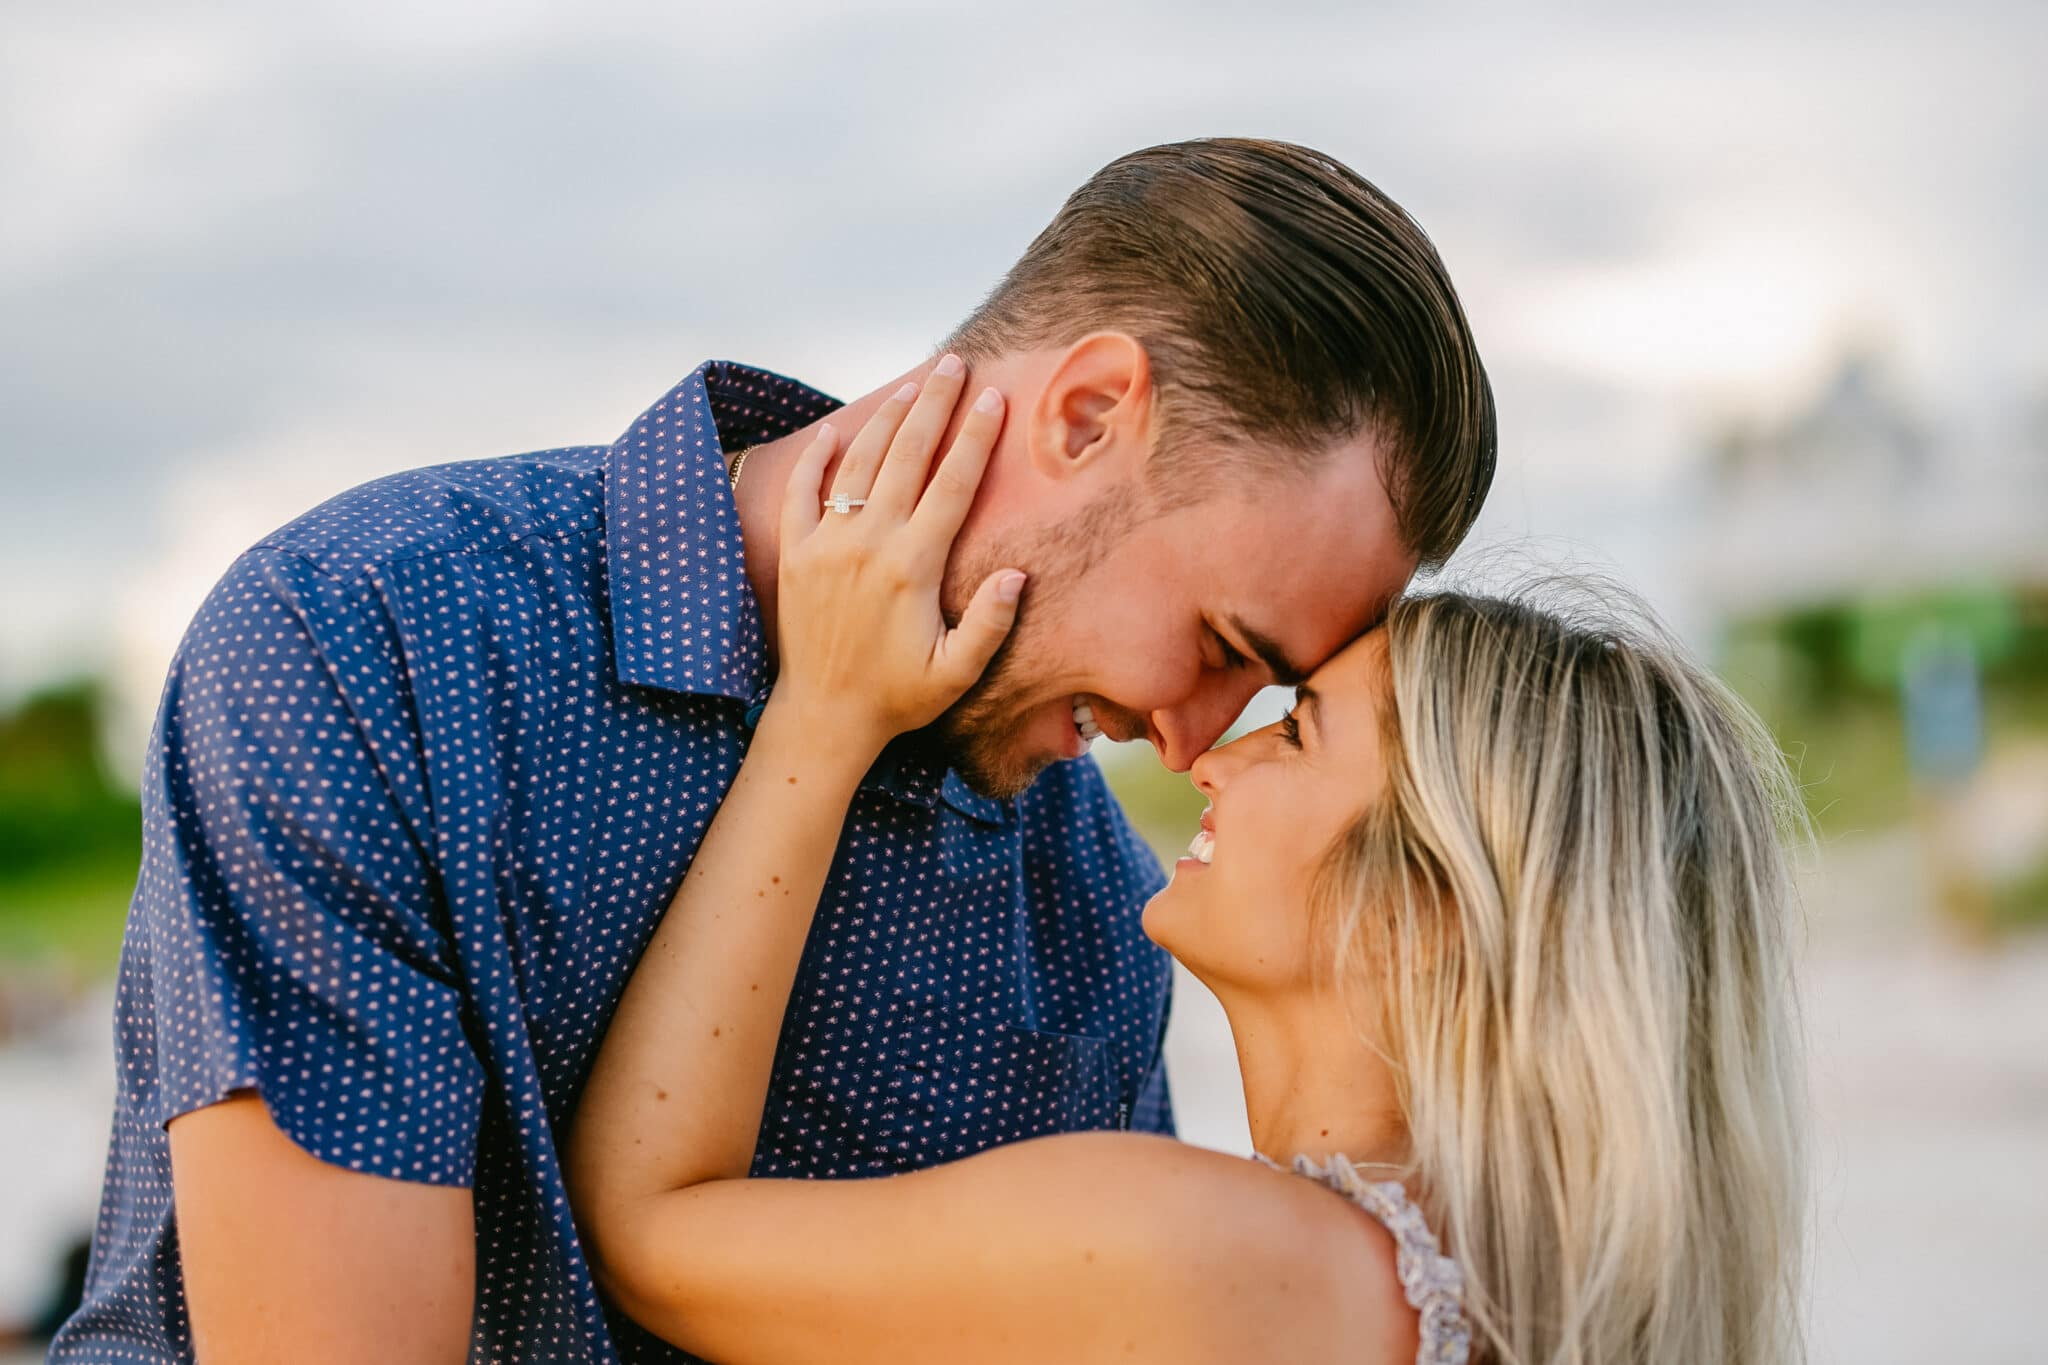 newly engaged couple forehead to forehead on the beach during the sunset after the proposal.